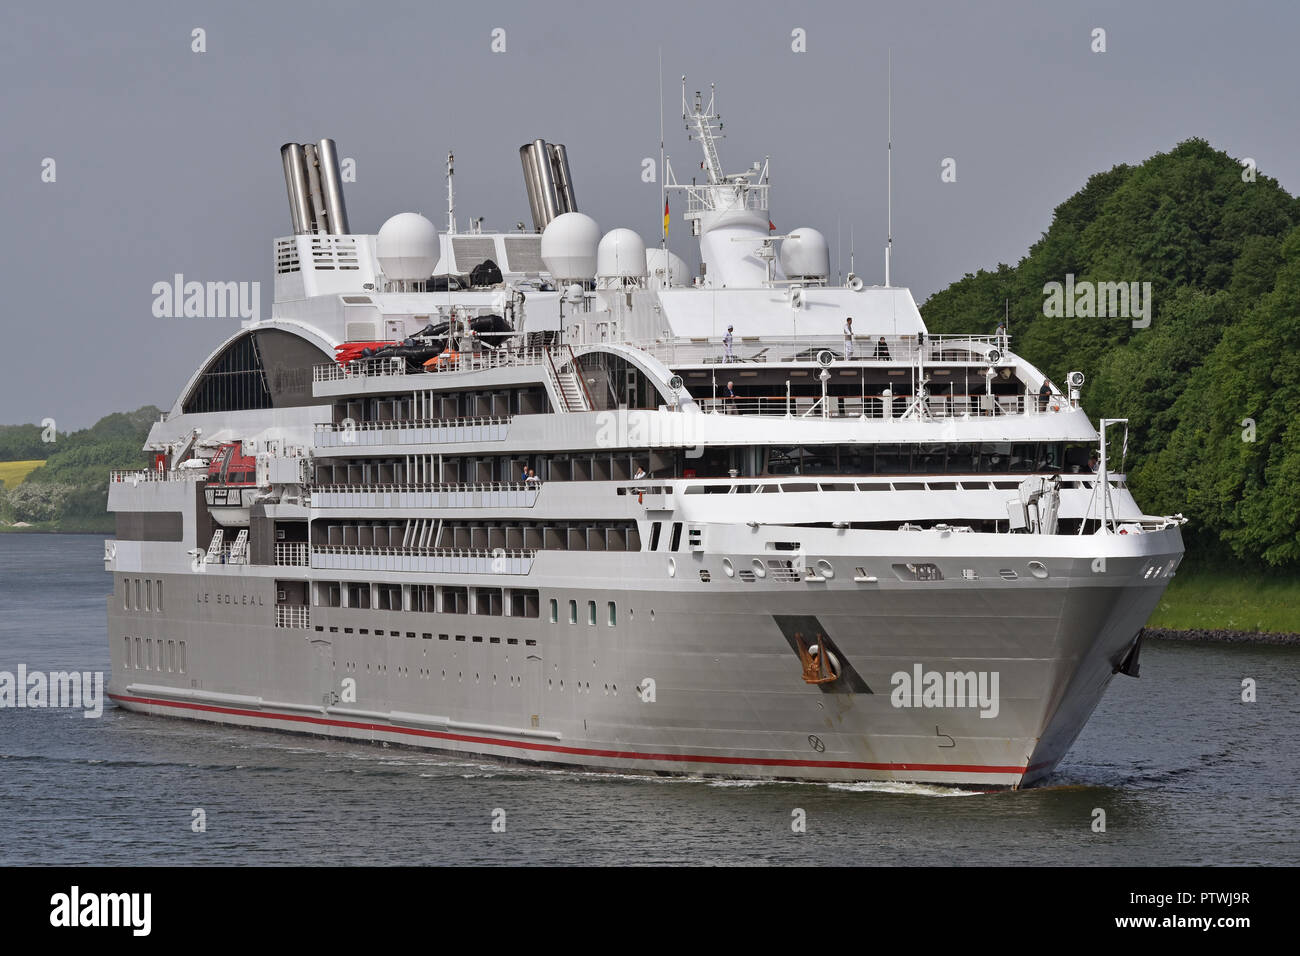 Cruiseship Le Soléal Stock Photo